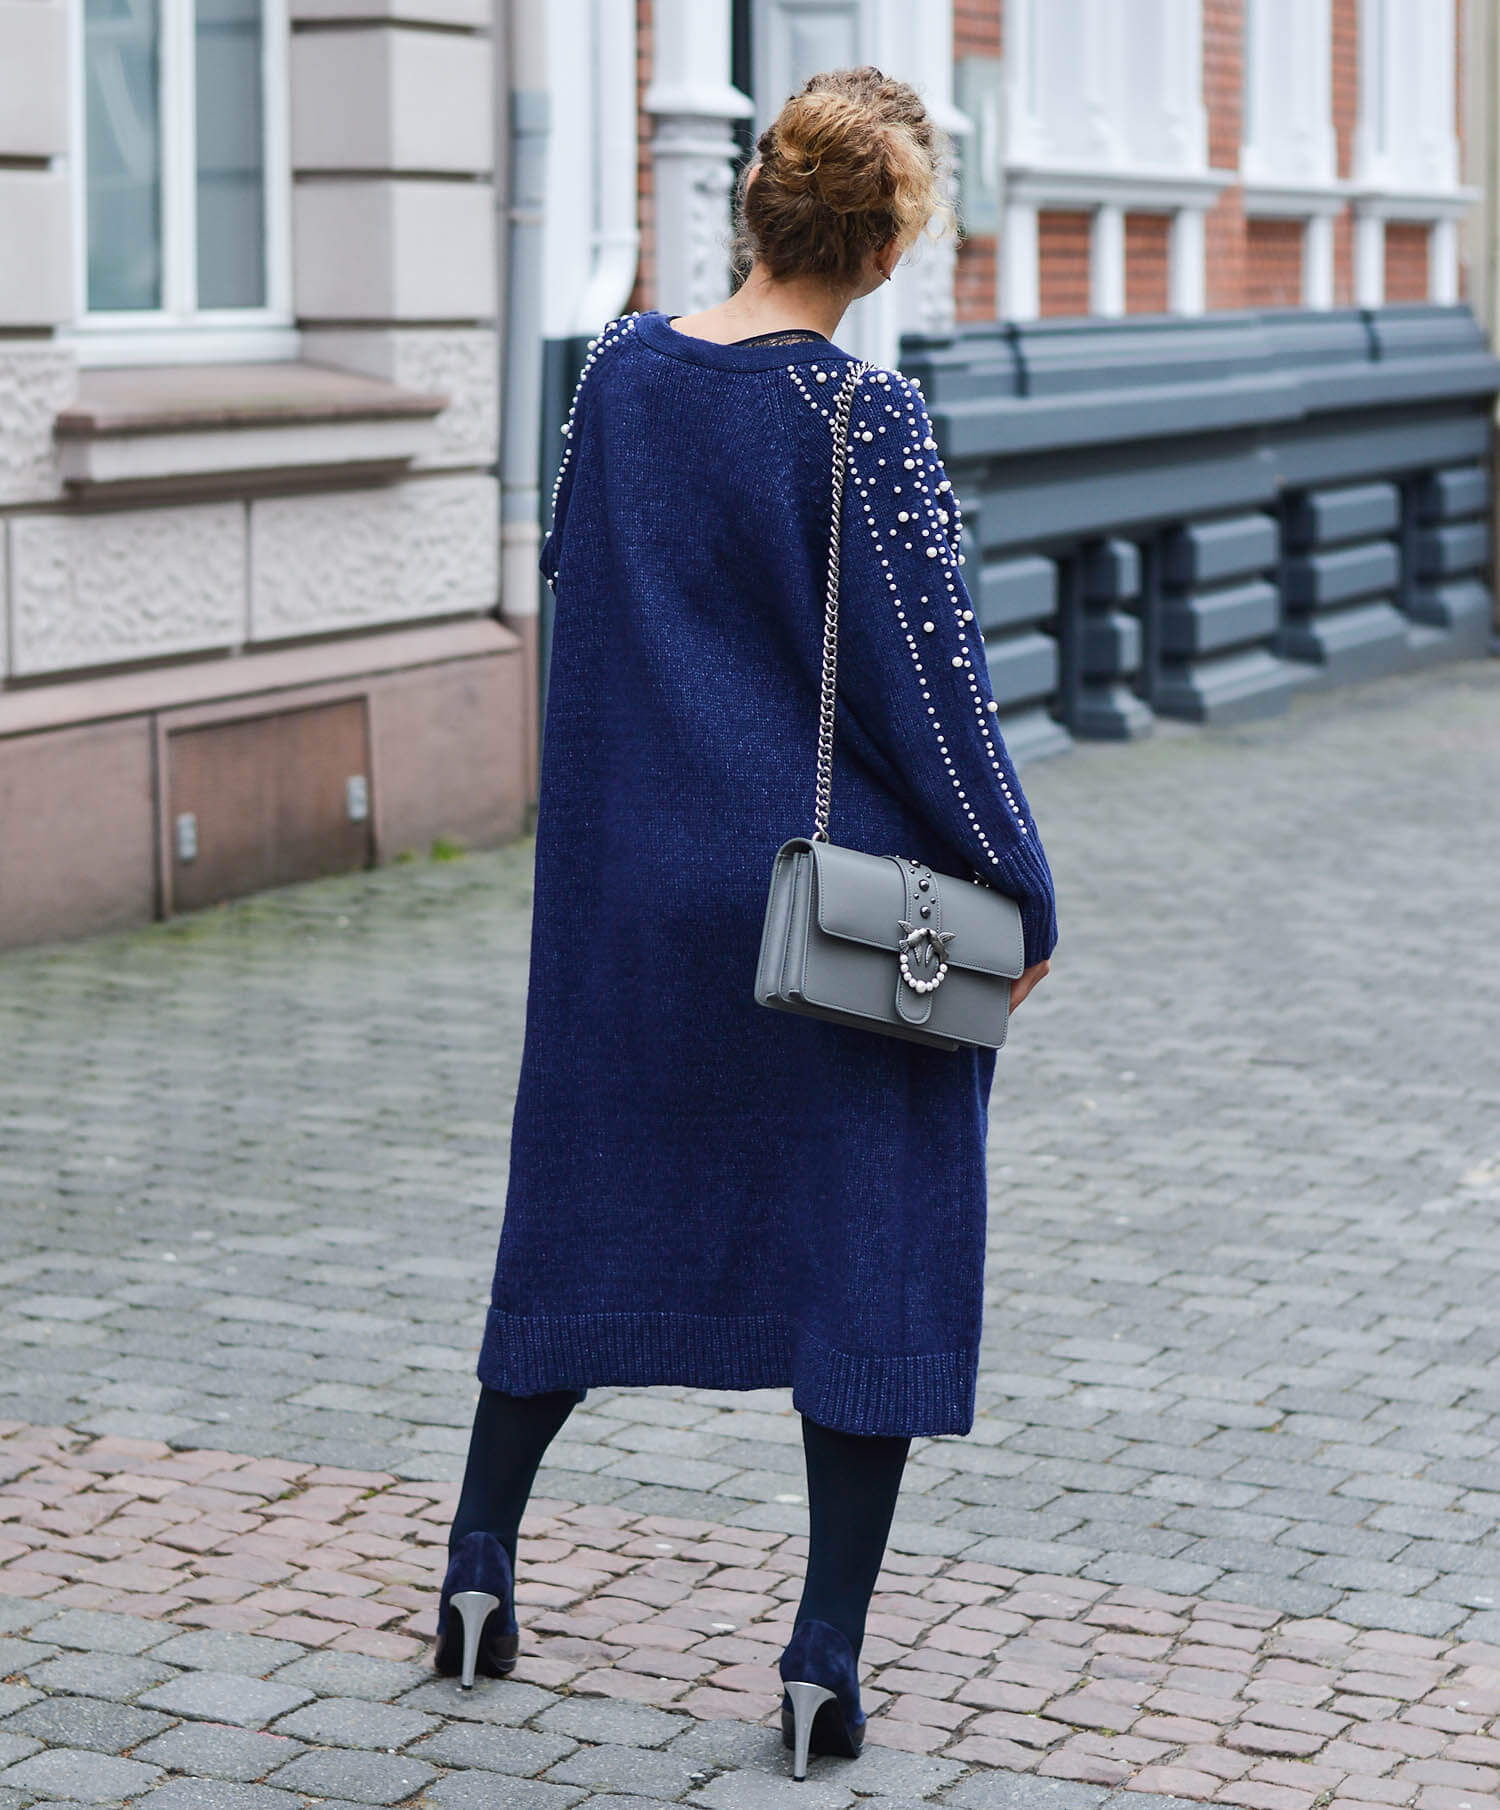 Kationette-Outfit-Zara-Long-Cardigan-with-pearls-Michael-Kors-Access-Sofie-Smartwatch-and-Pinko-Bag-fashionblogger-nrw